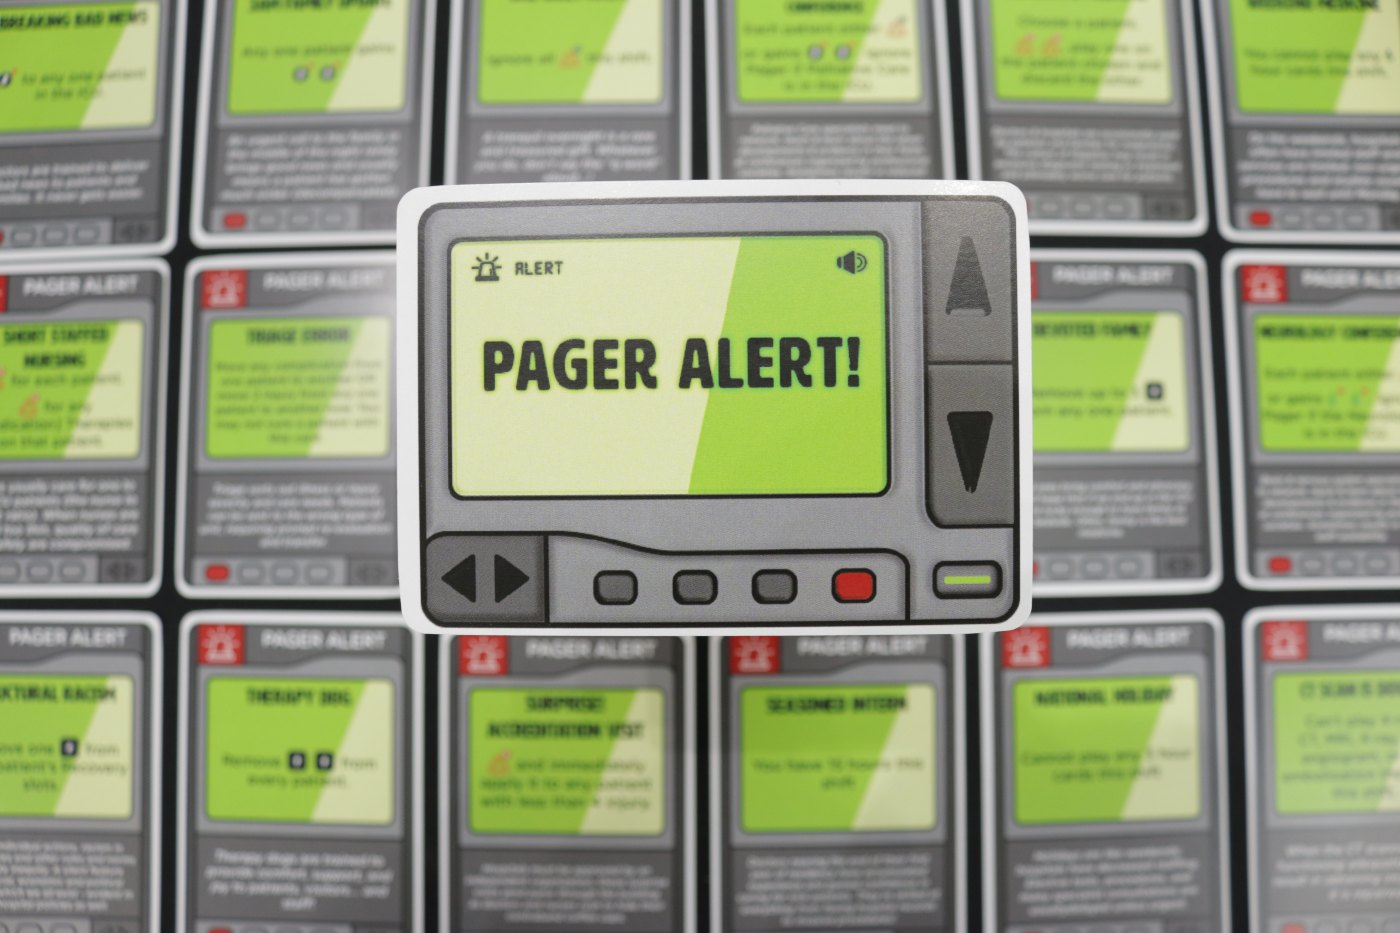 Critical Care pager alerts